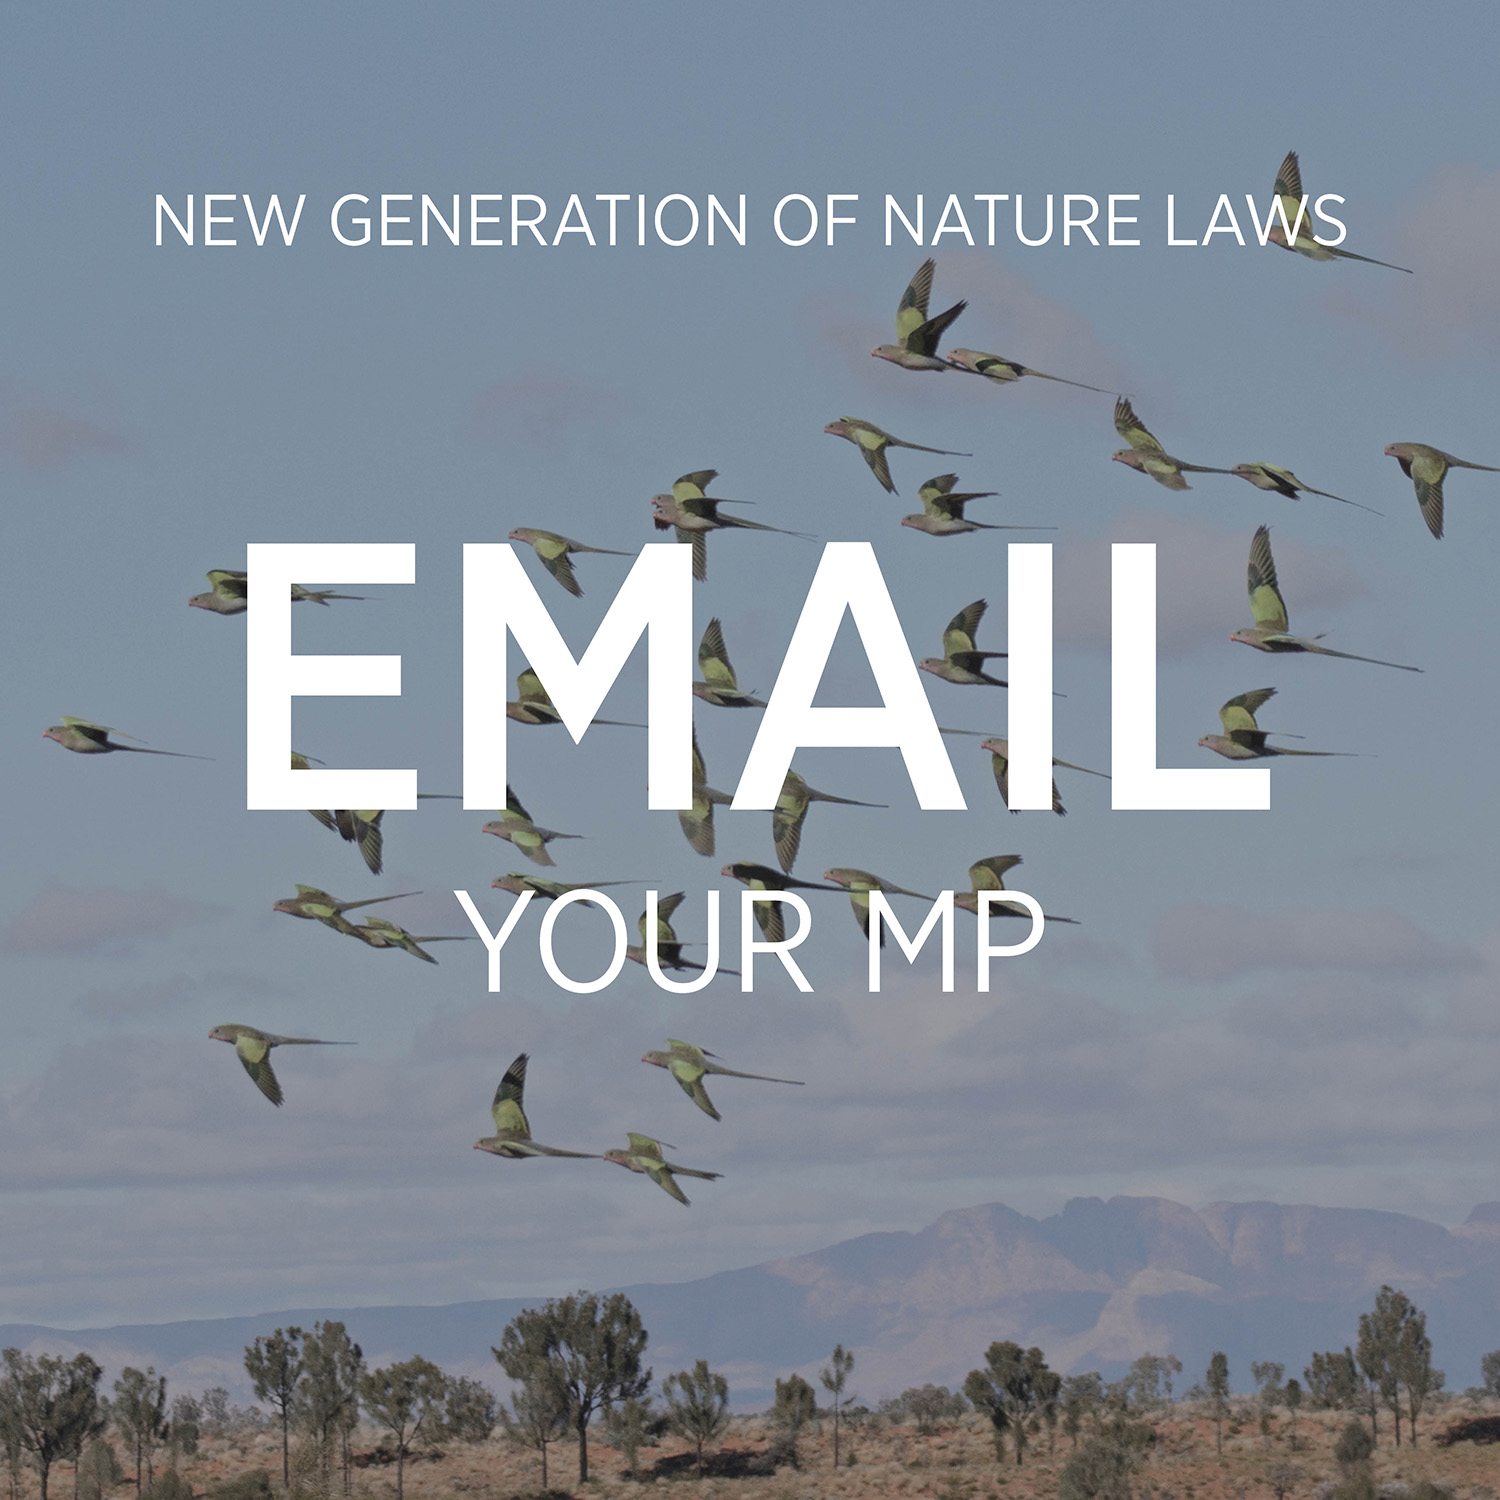 Email your Member of Parliament asking them to commit to a new system of environmental laws